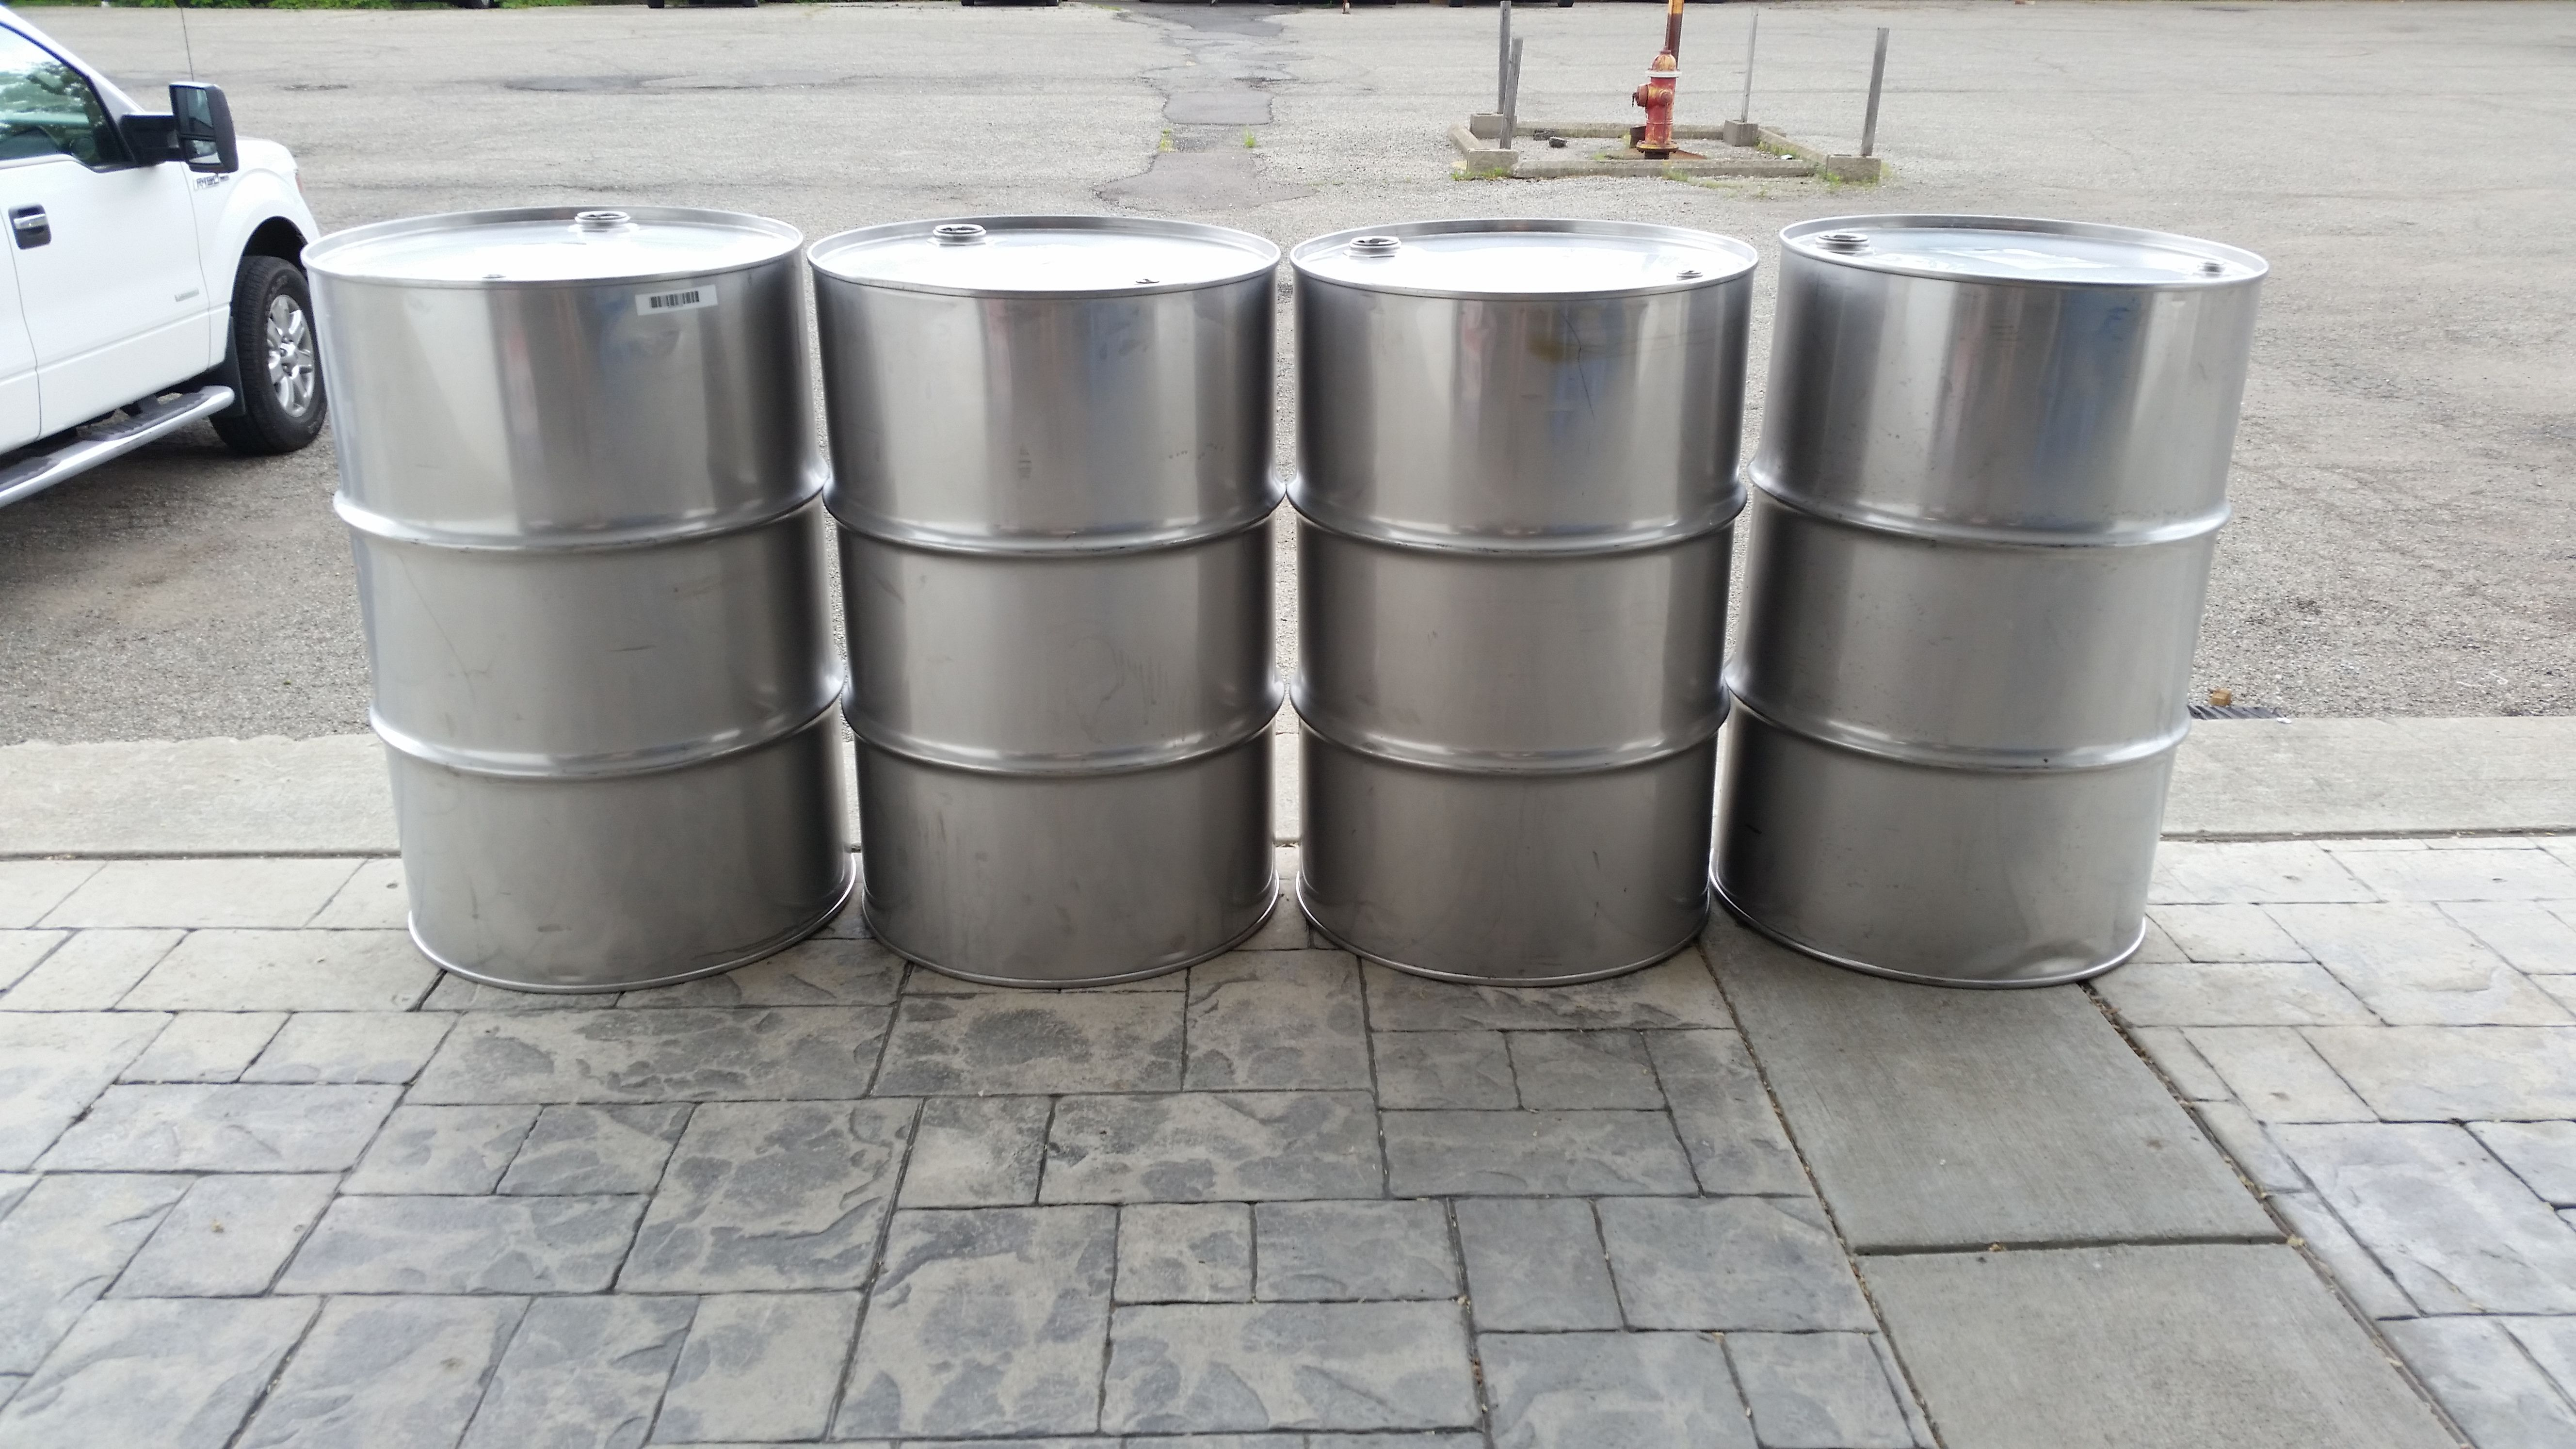 New Used Stainless Steel Barrels Plastic Barrels Steel Barrel Stainless Steel Accessories Barrel